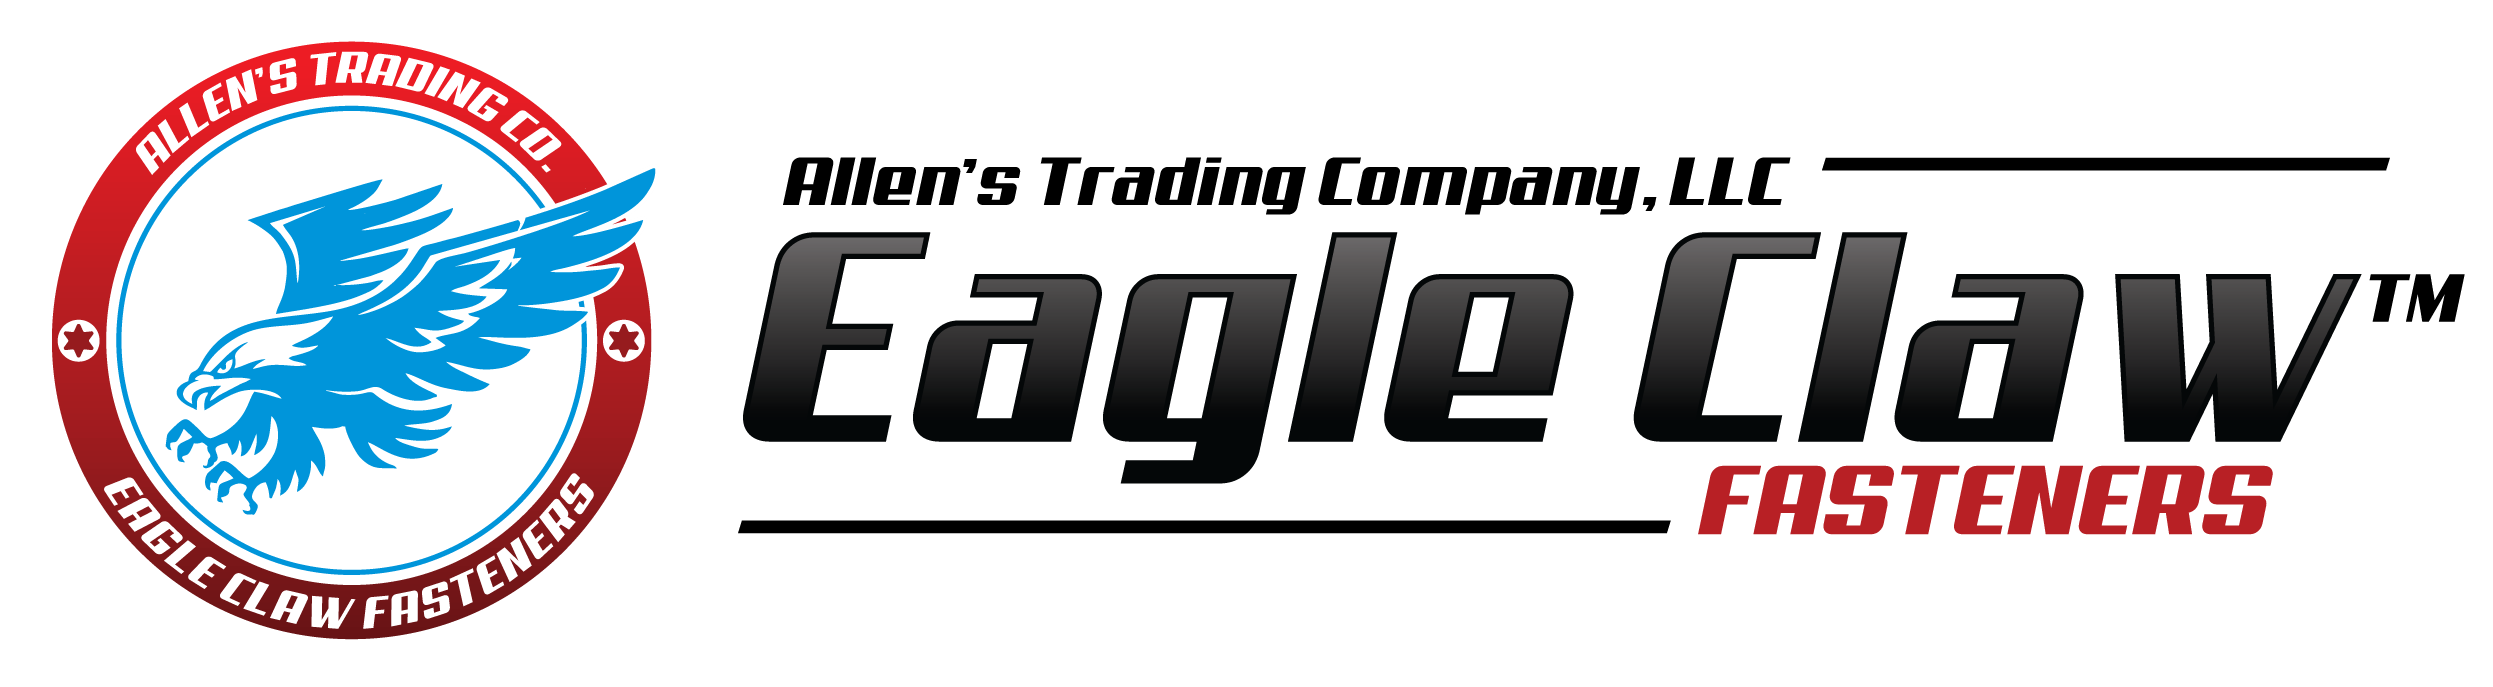 atc-eagleclaw-logo-tm-01-png-latest.png